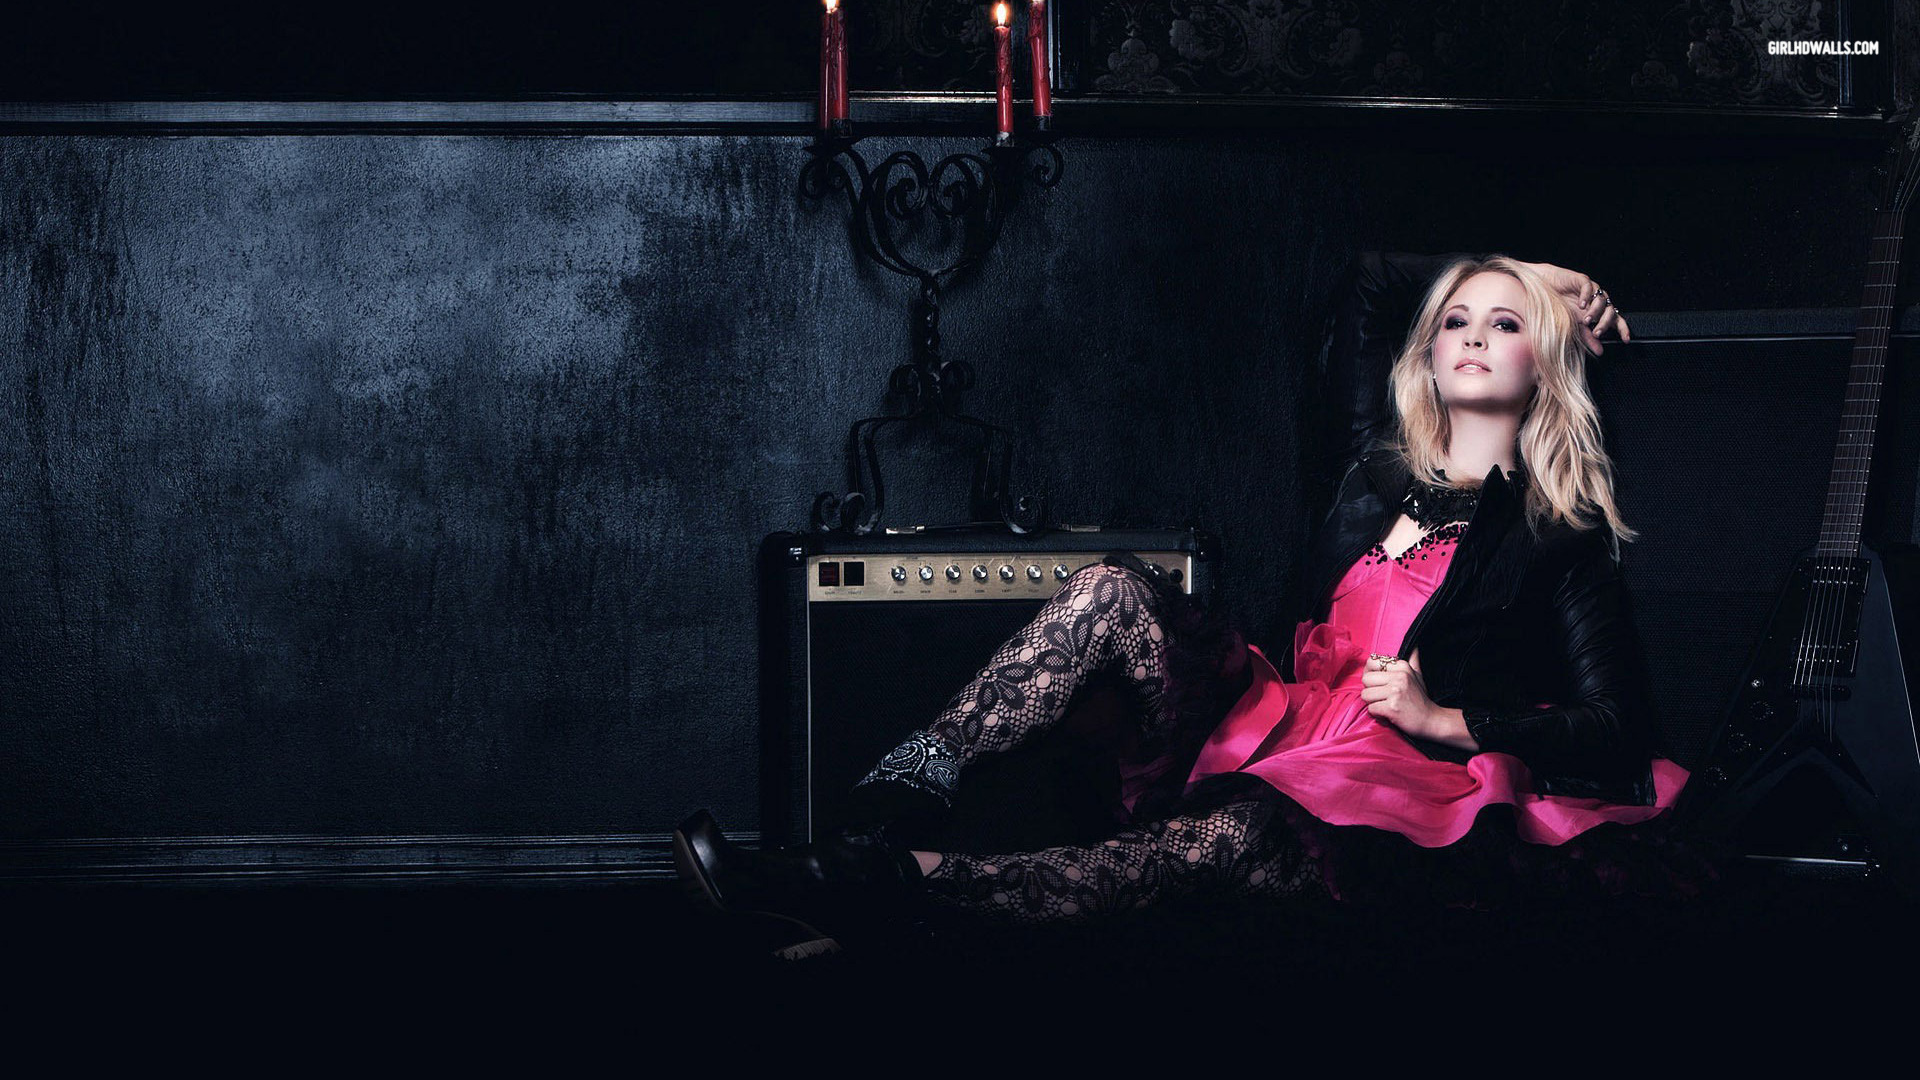 1920x1080 - Candice Accola Wallpapers 1